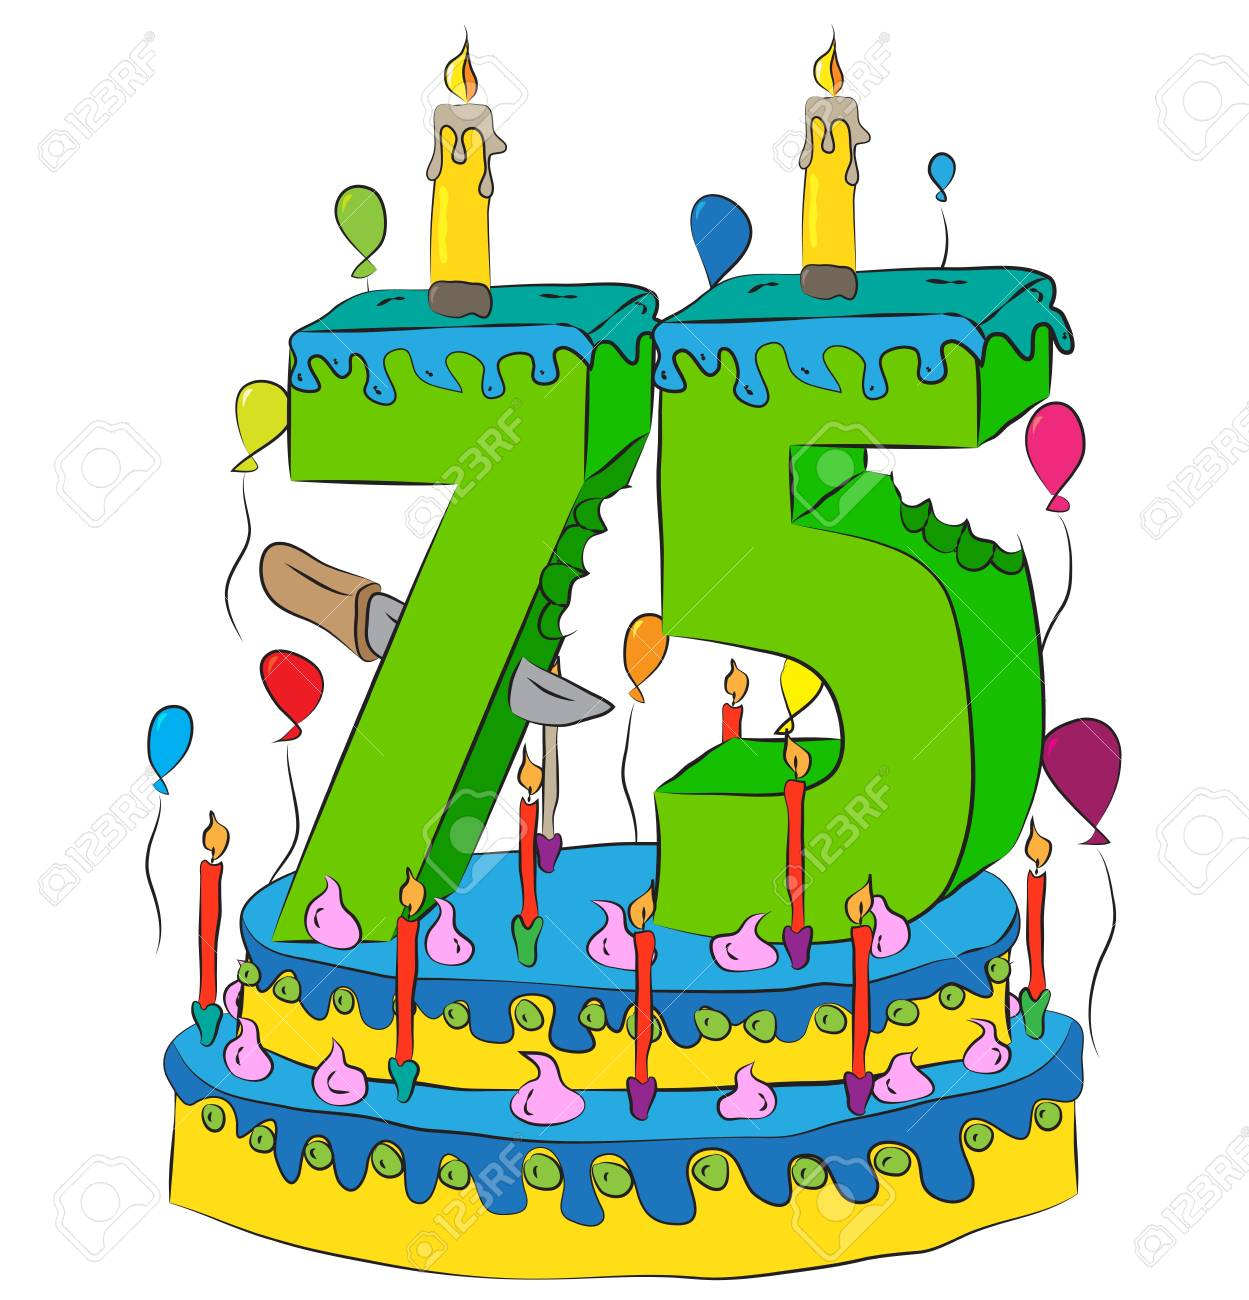 Pleasant 75 Birthday Cake With Number Seventy Five Candle Celebrating Funny Birthday Cards Online Inifofree Goldxyz